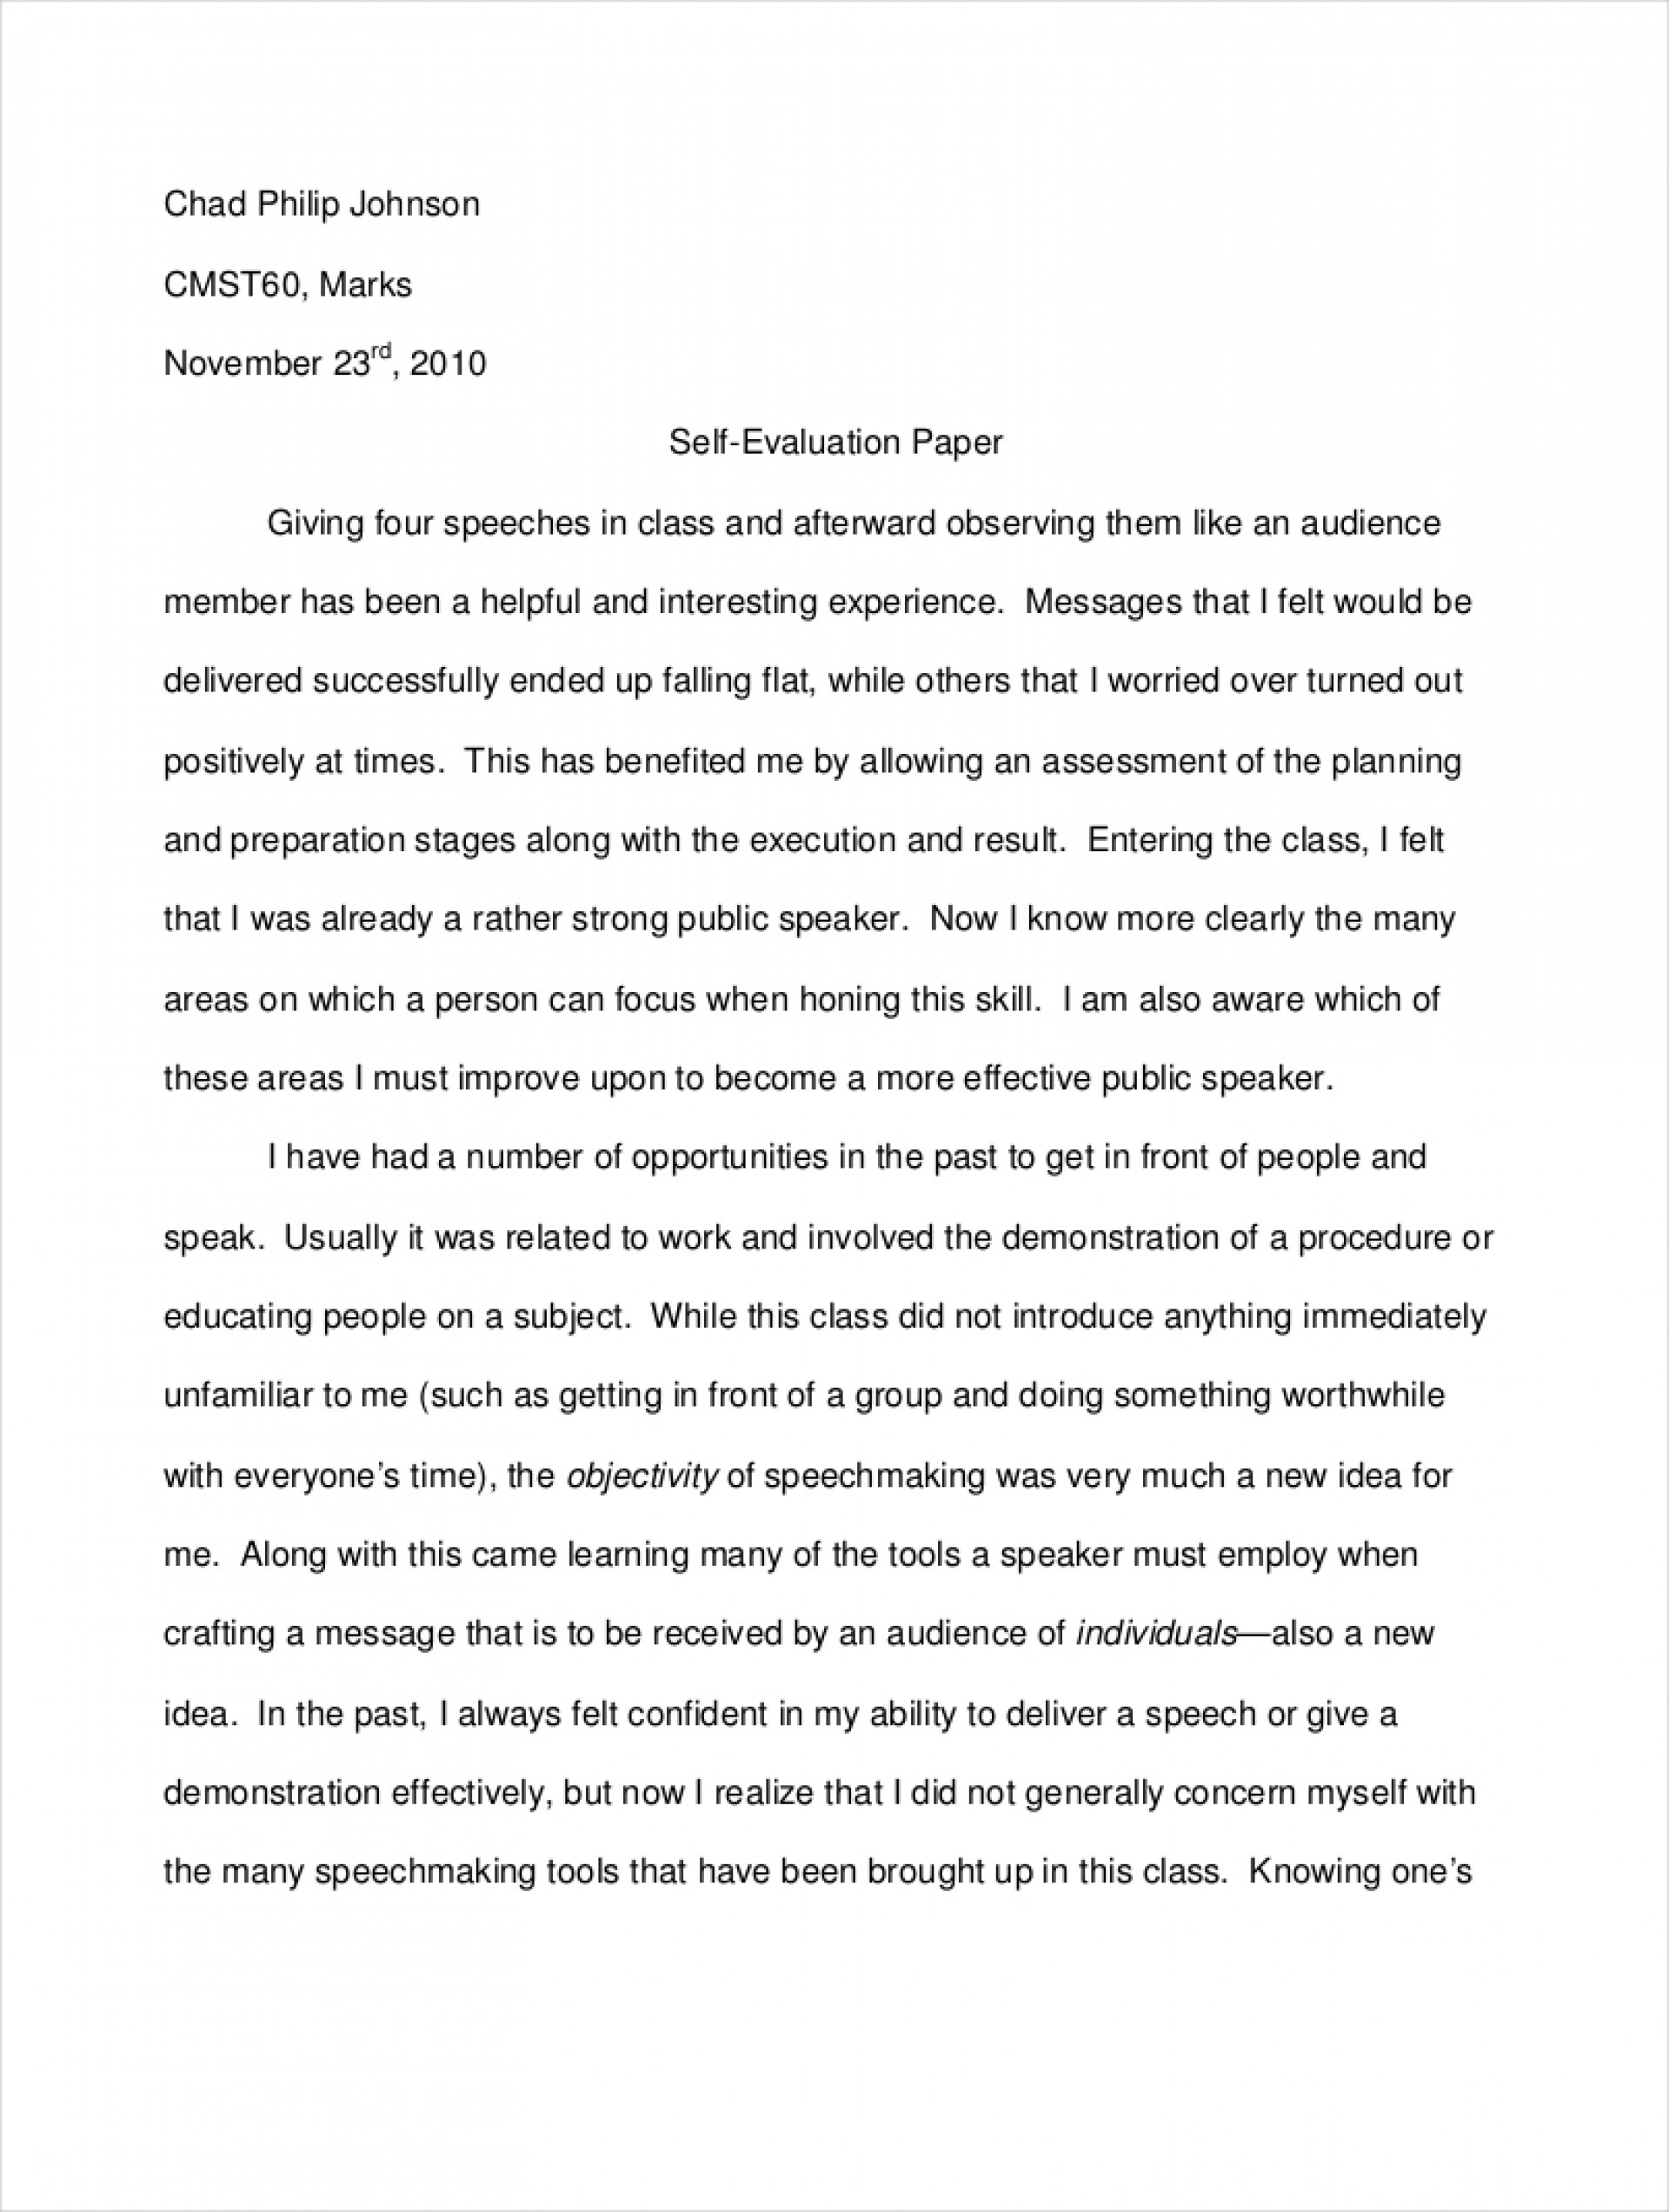 008 Ideas Of Examples Evaluation Essayn Example Who Am Amazing I Essay For Students College How To Write A Good 'who I' 1920